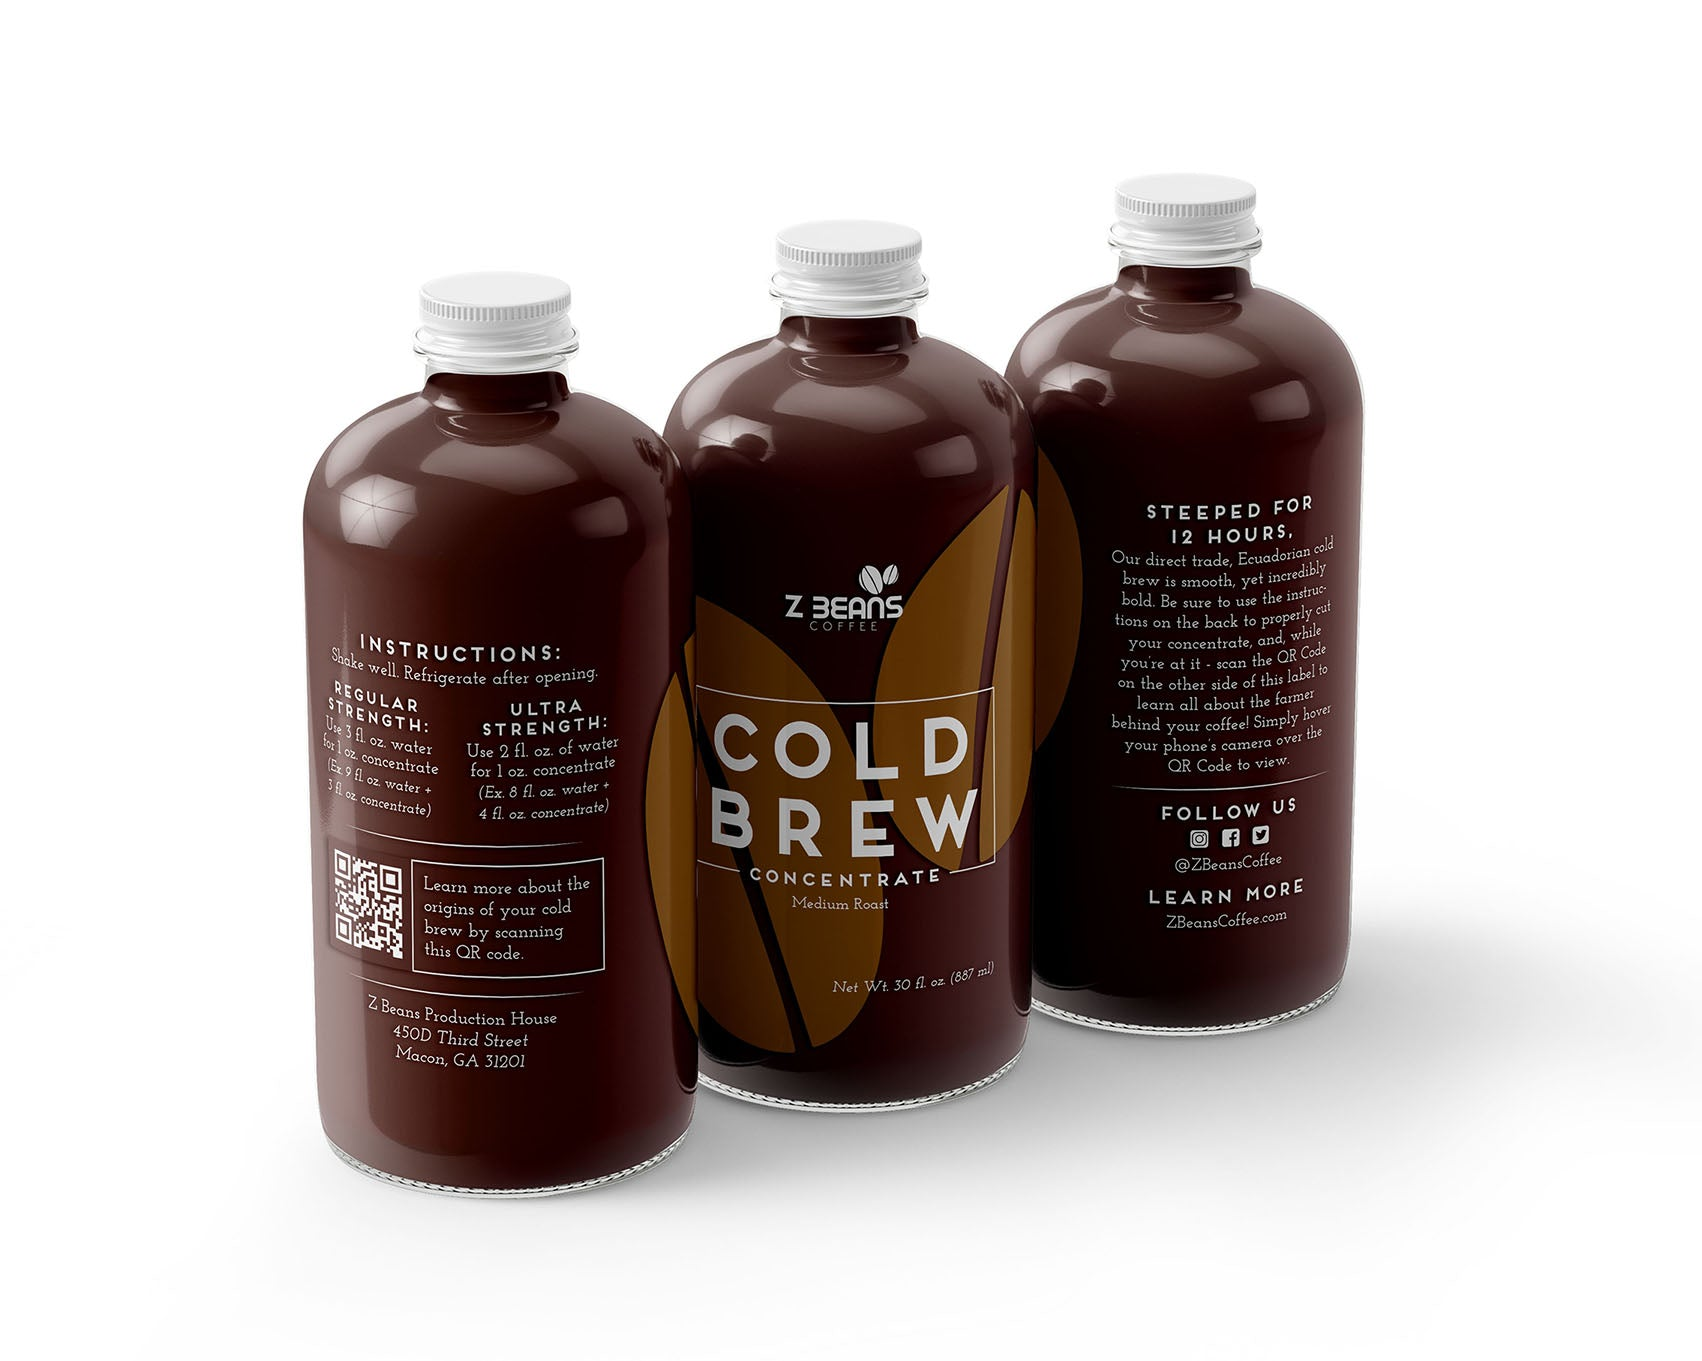 Cold Brew Concentrate